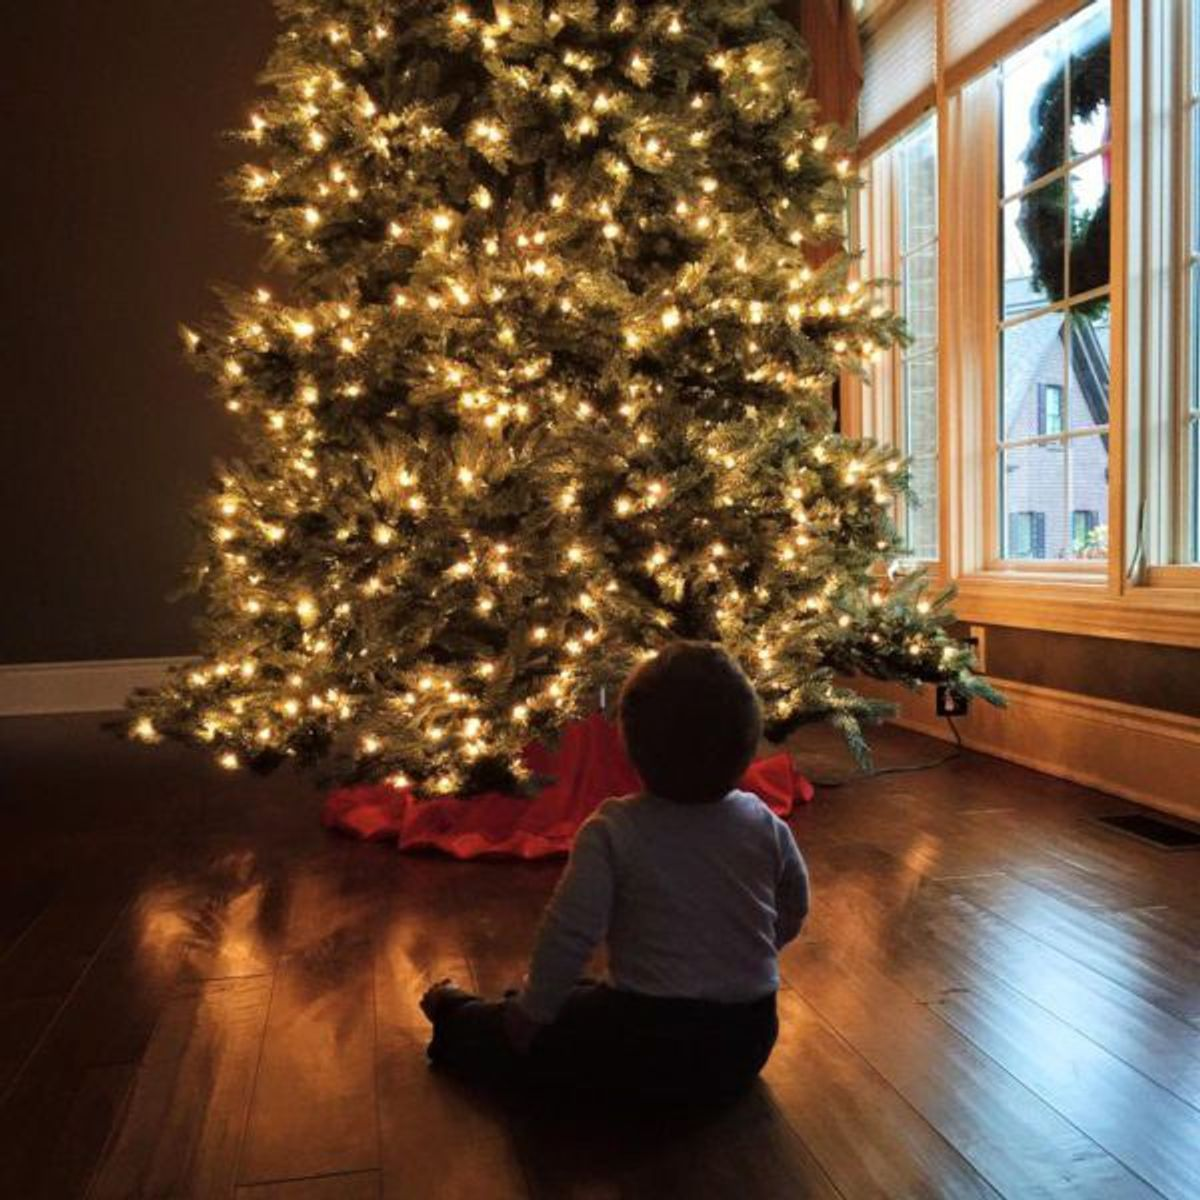 What We All Have To Learn About Christmas From The Little Boy Who Got An Avocado